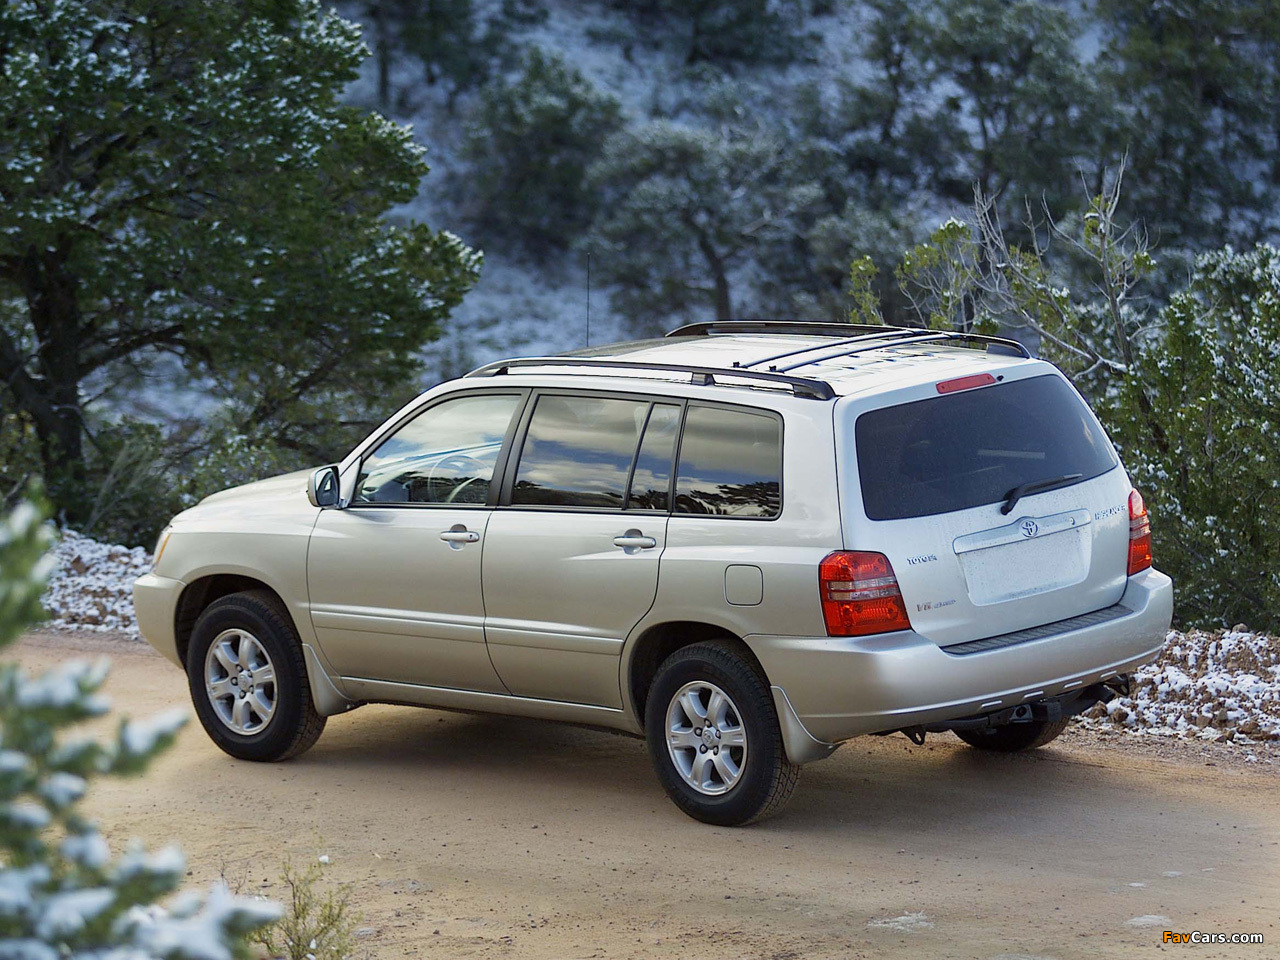 Toyota Highlander 2001 03 Photos 1280x960